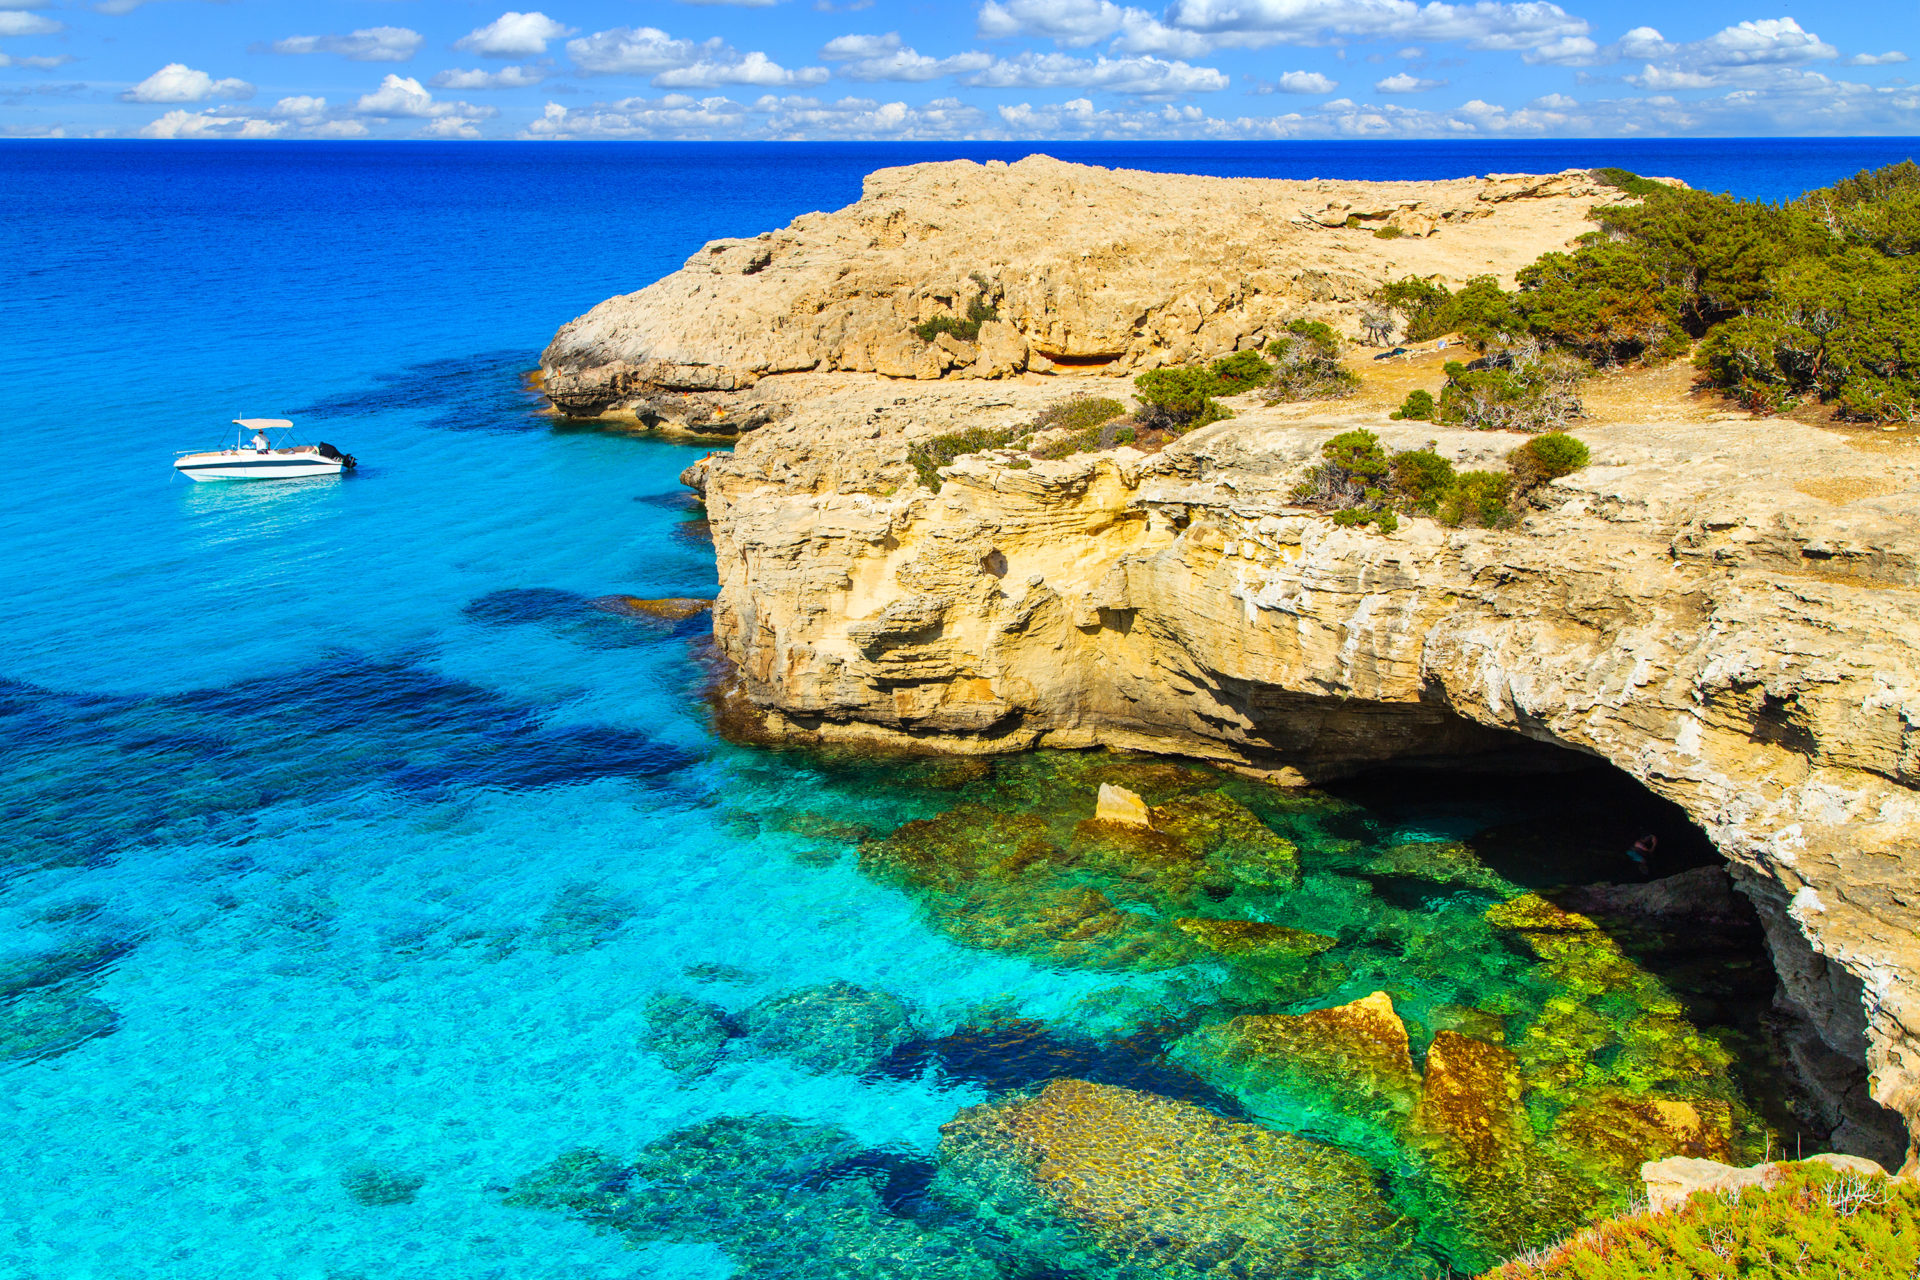 AKAMAS PENINSULA NATIONAL PARK, CYPRUS